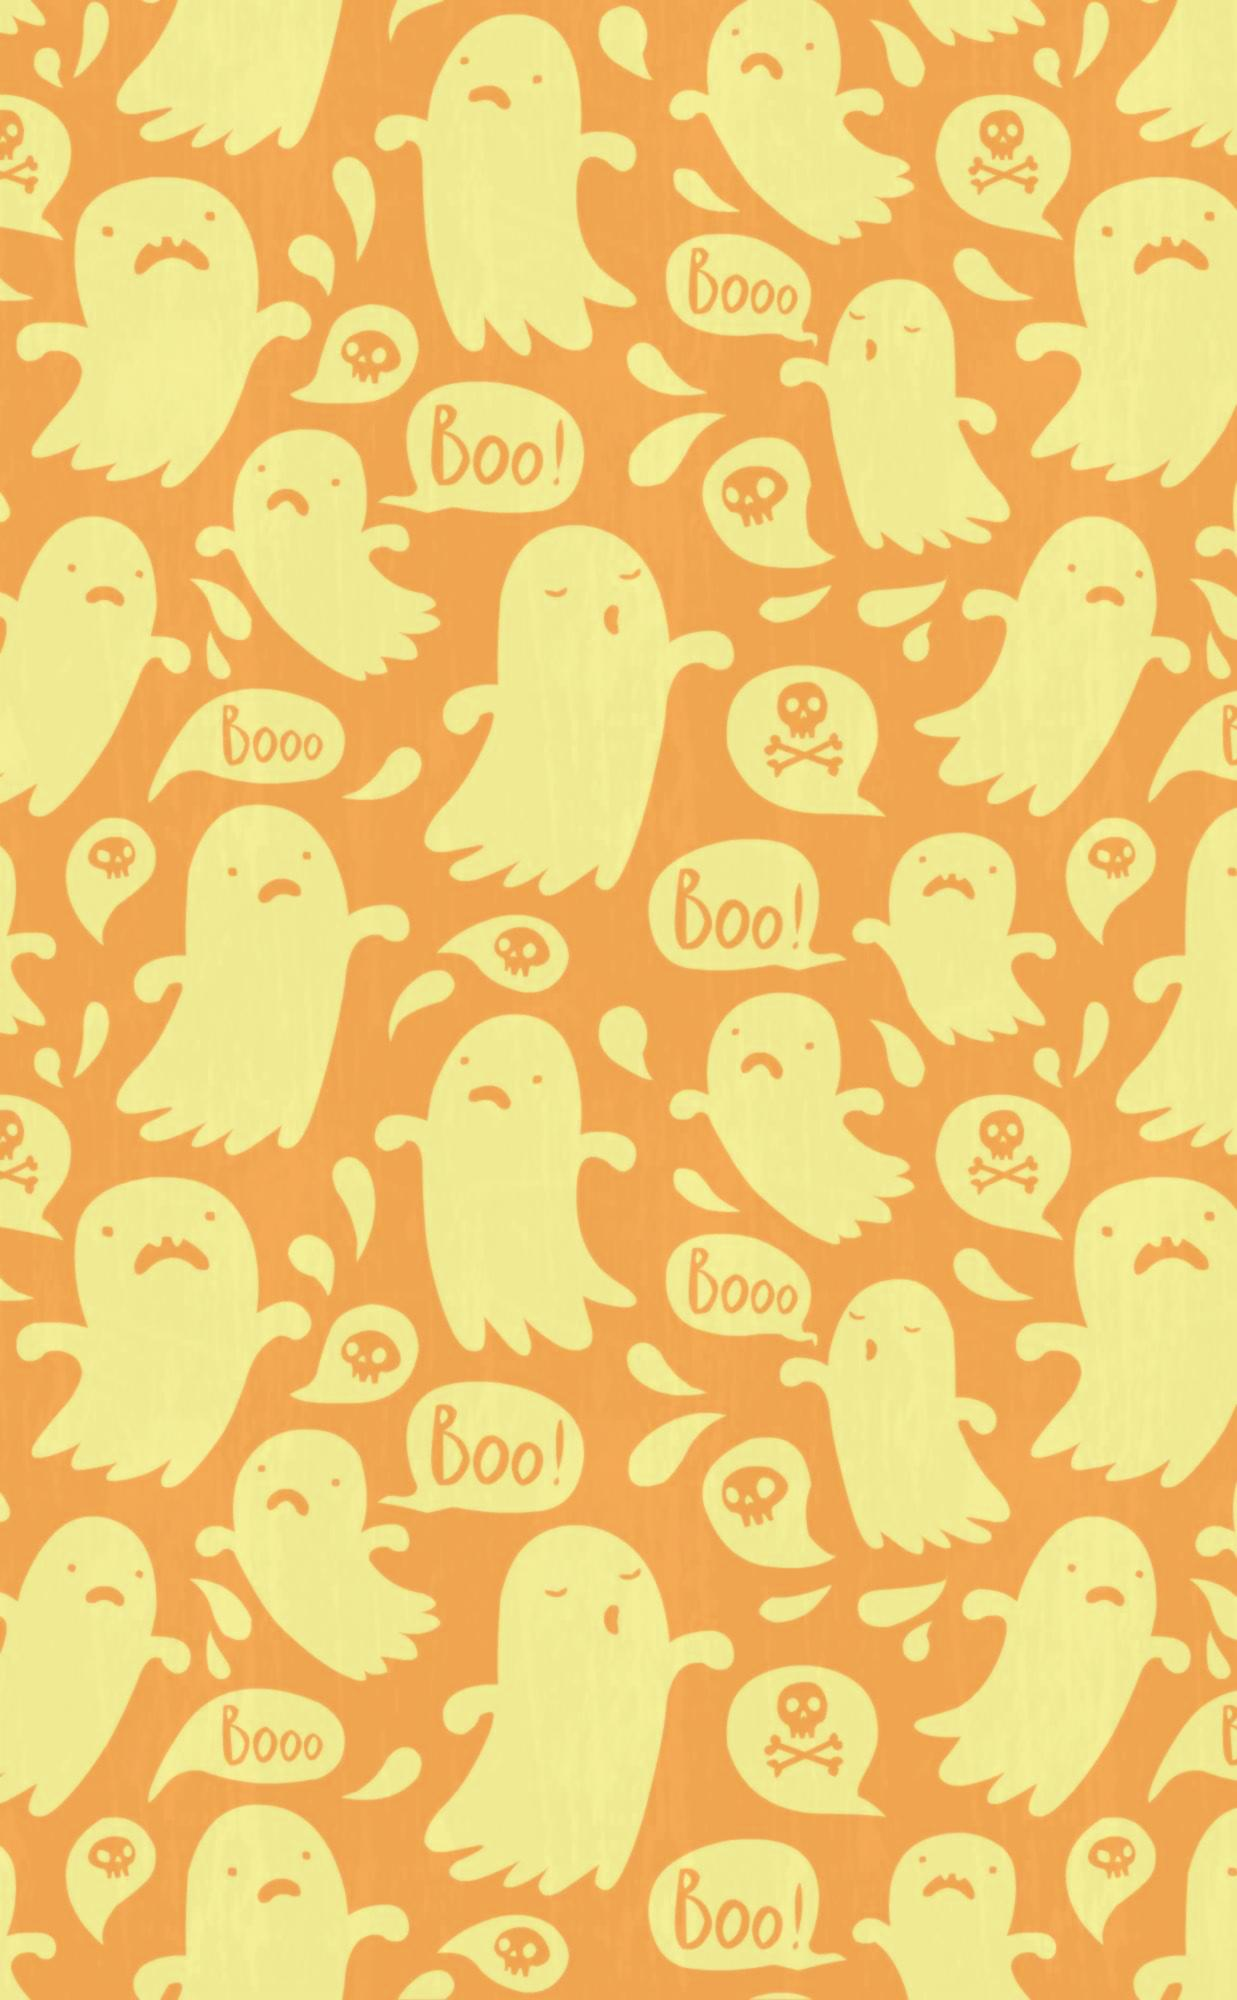 Halloween Iphone Wallpaper Tumblr Wallpapers From Festival - Iphone